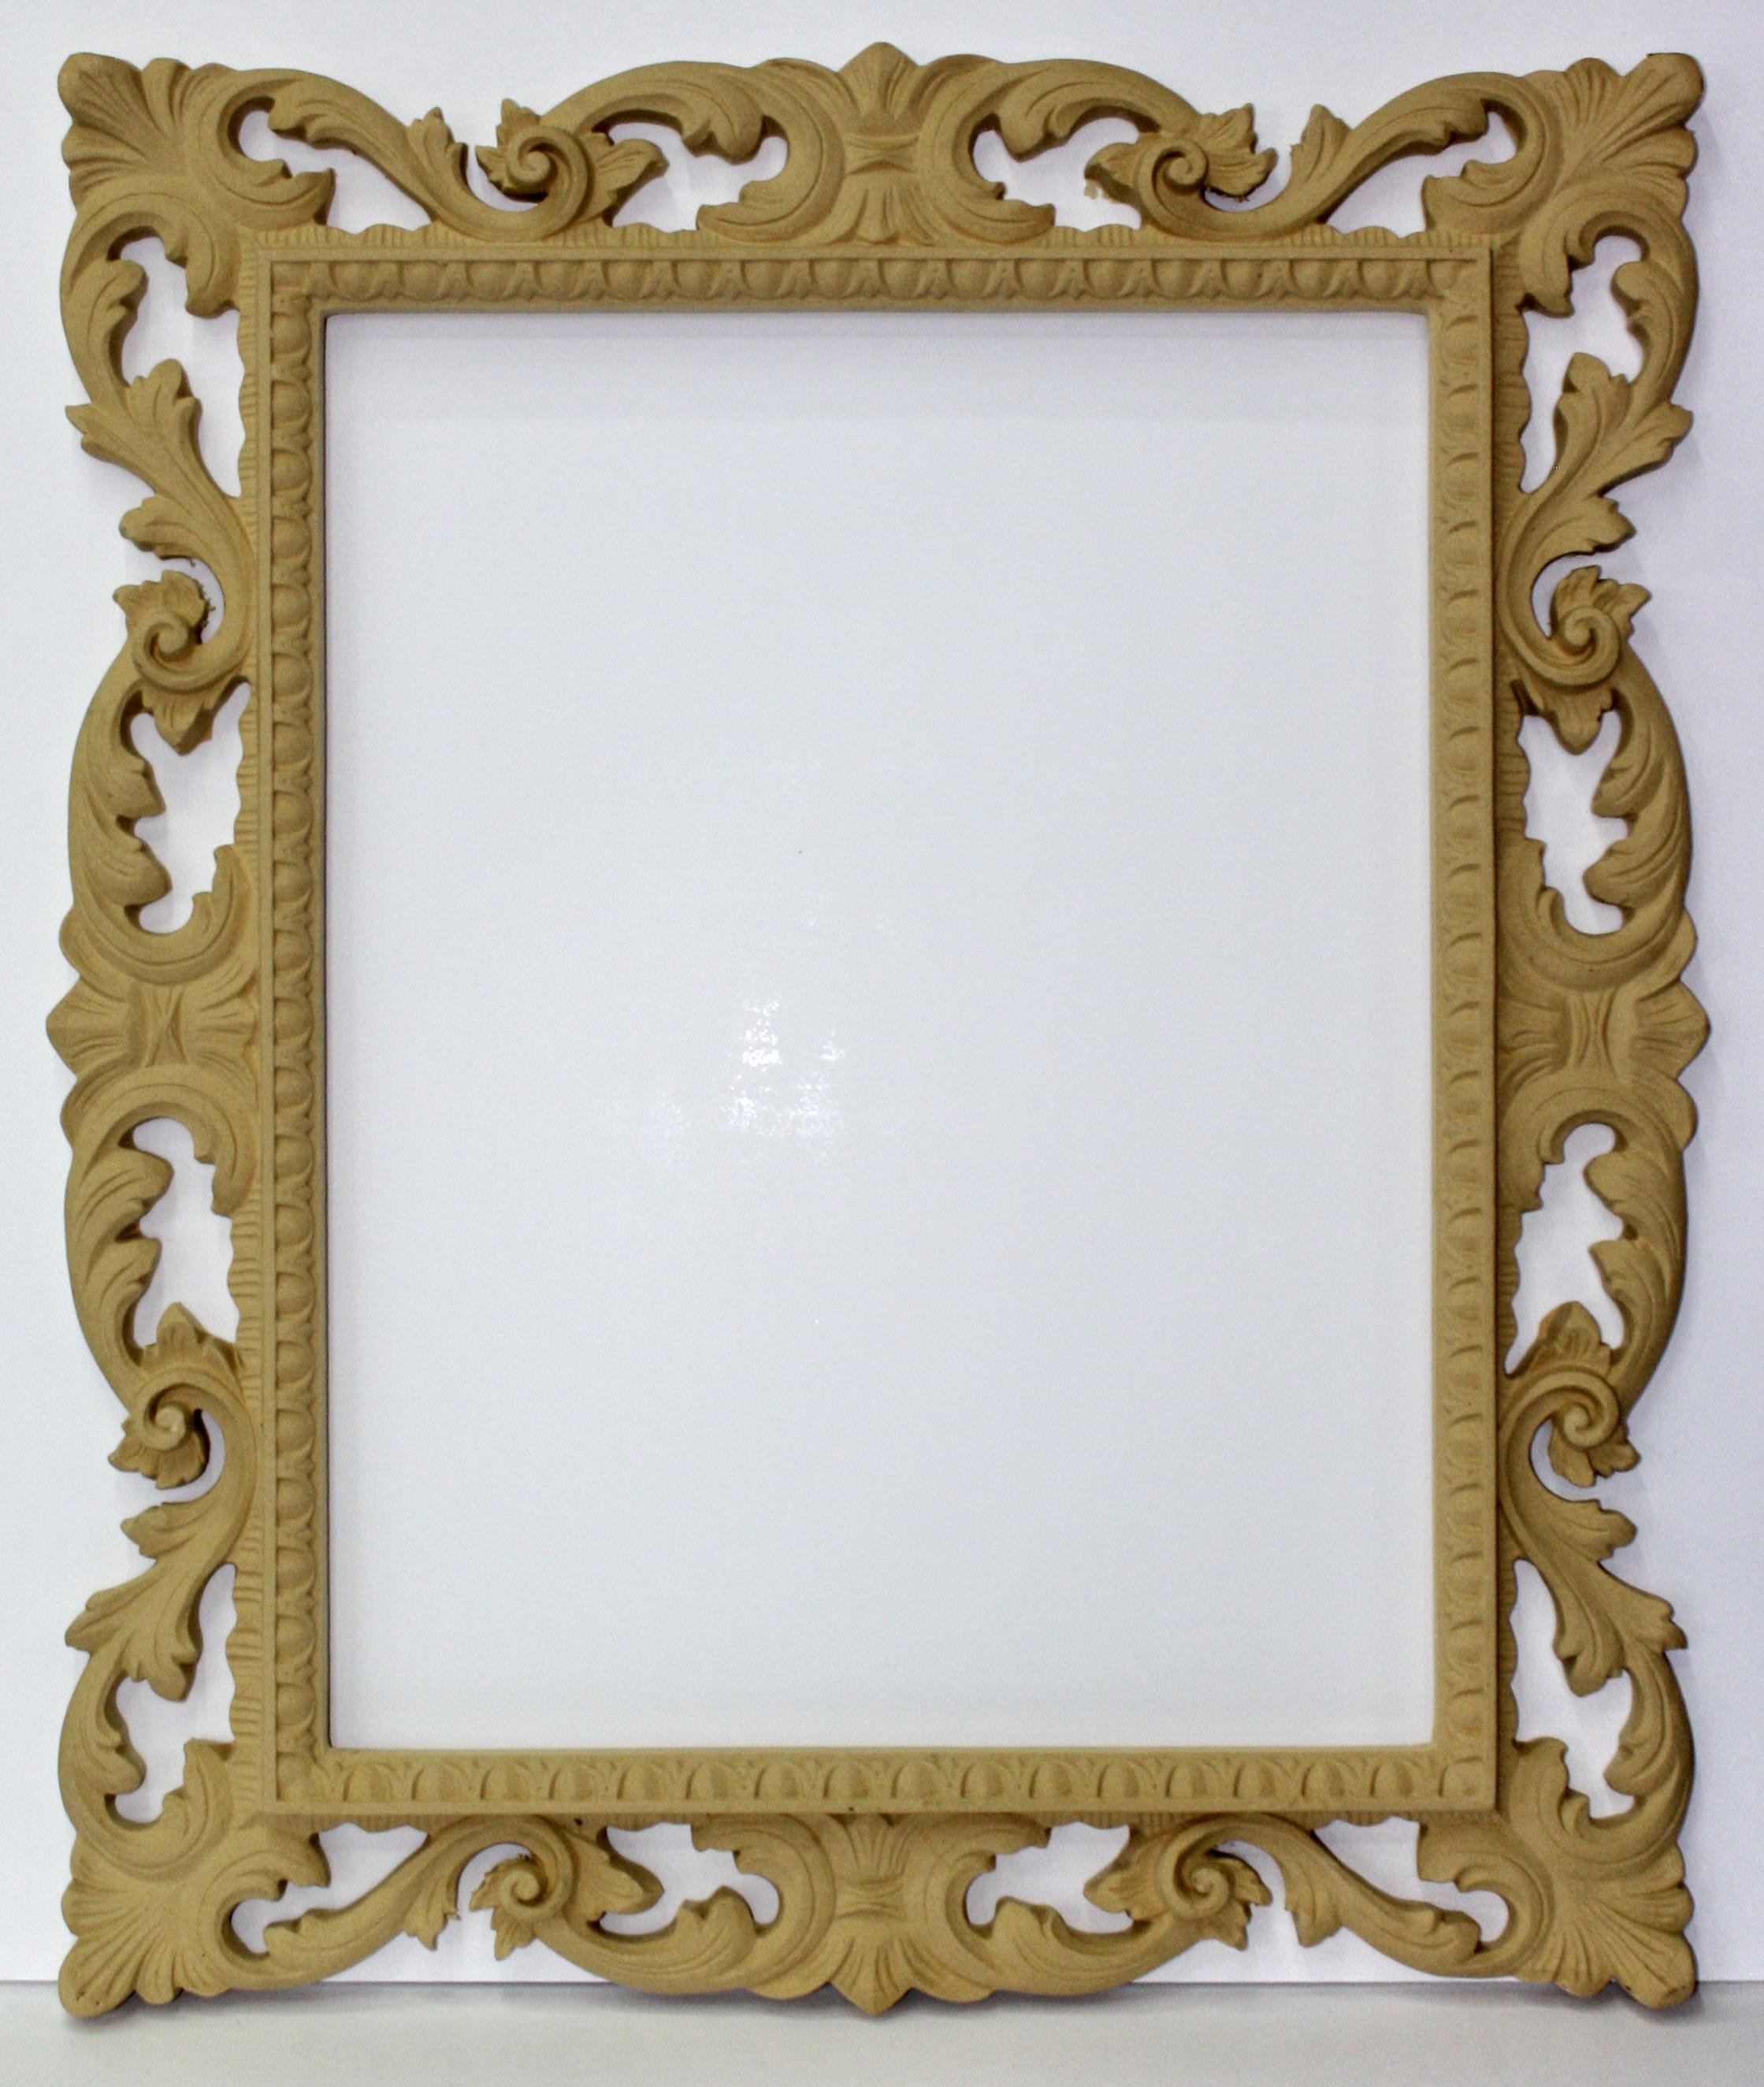 Perforated frame